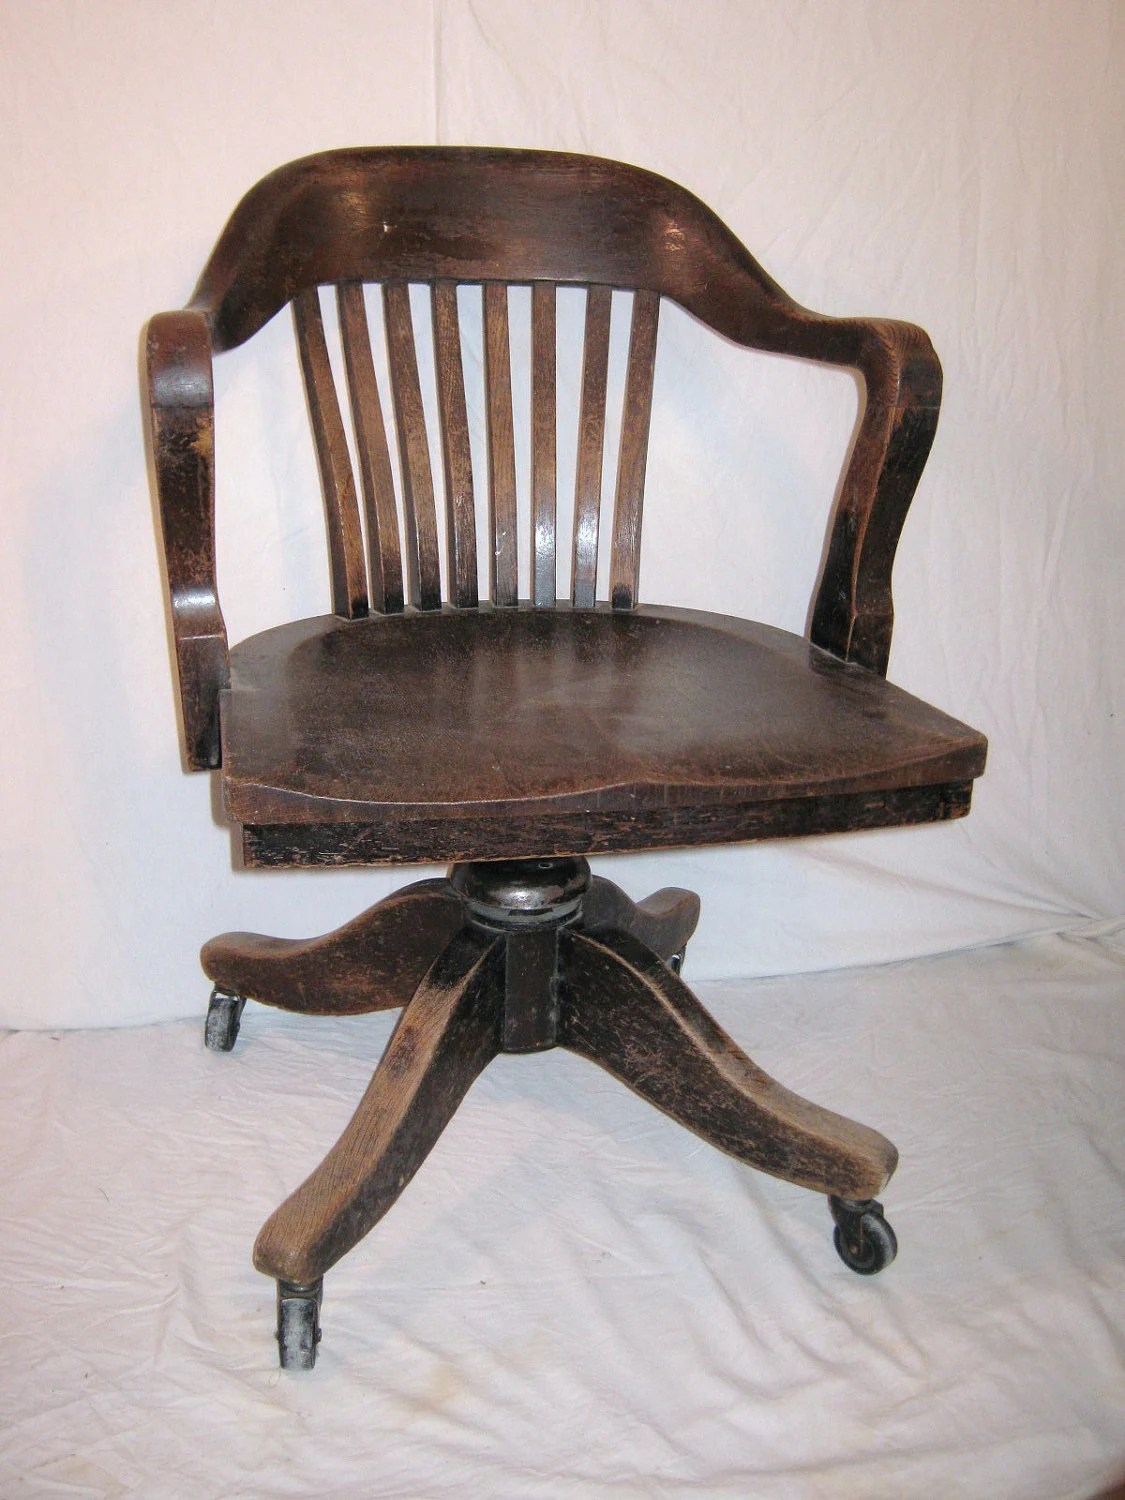 Bankers Chairs Bankers Chair Vintage Heavy Wood From 1930 Or 40s Office Desk